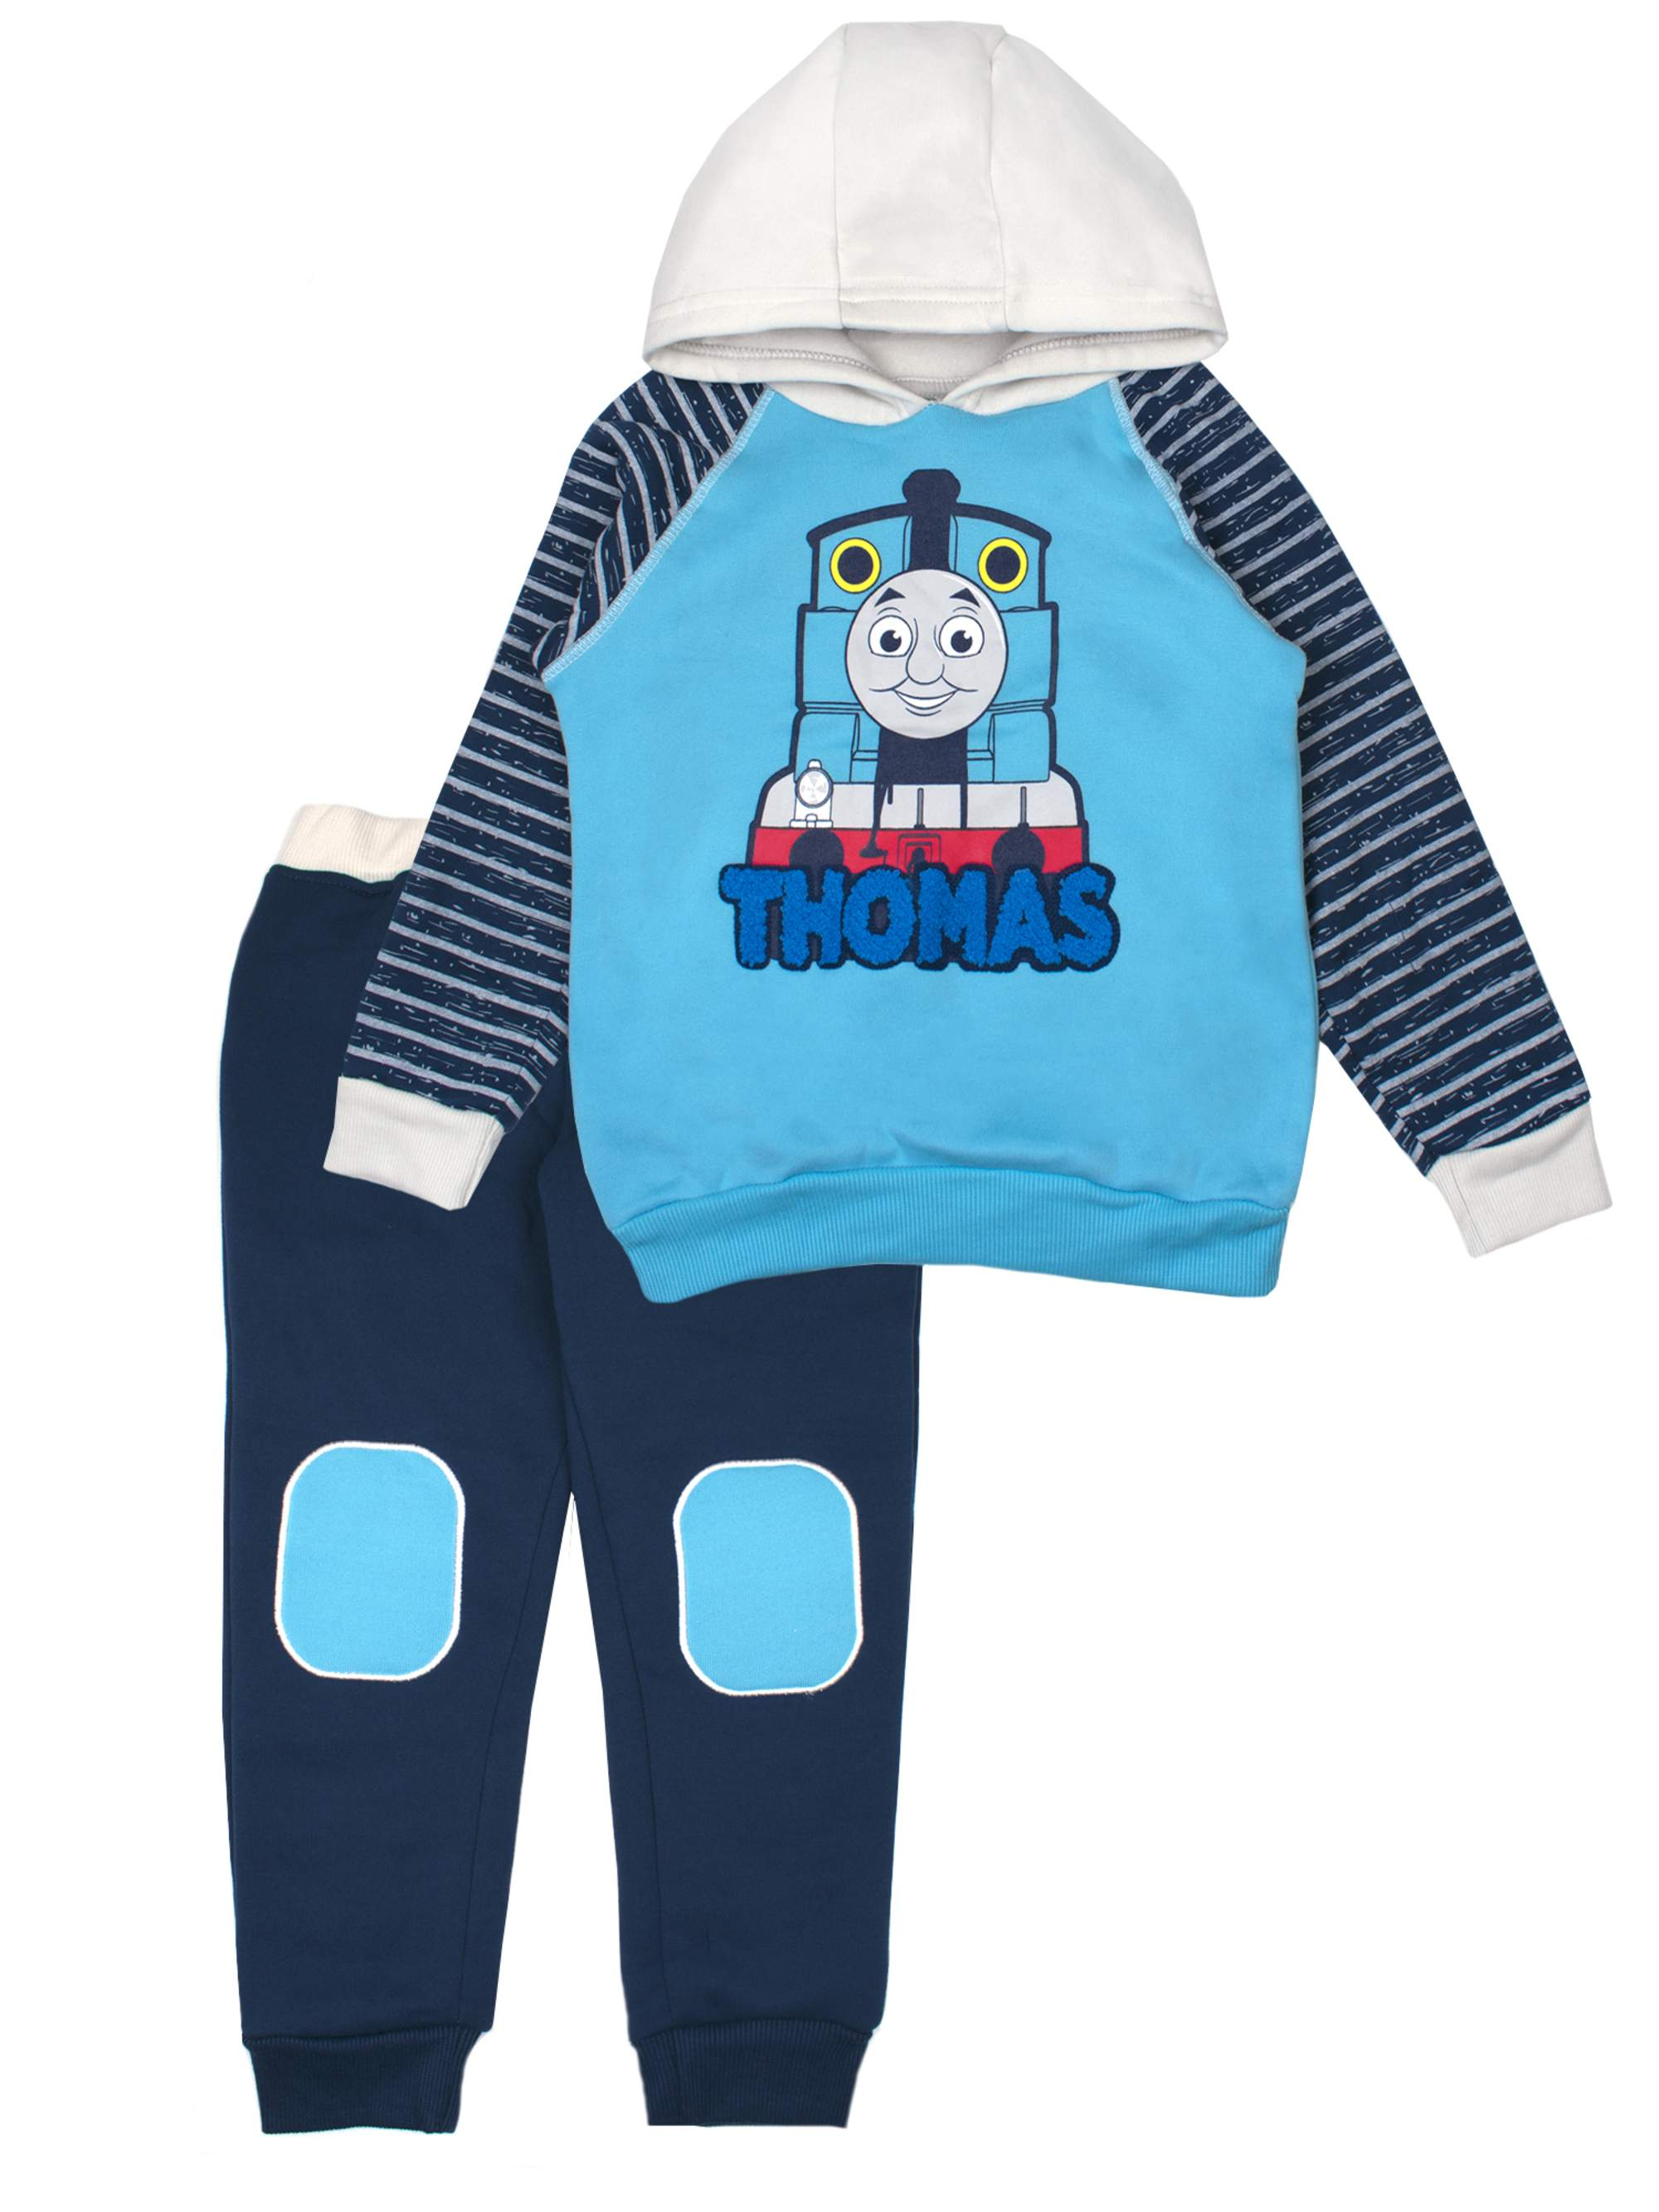 Pullover Hoodie Sweatshirt & Knee Patch Jogger Pants, 2pc Outfit Set (Toddler Boys)